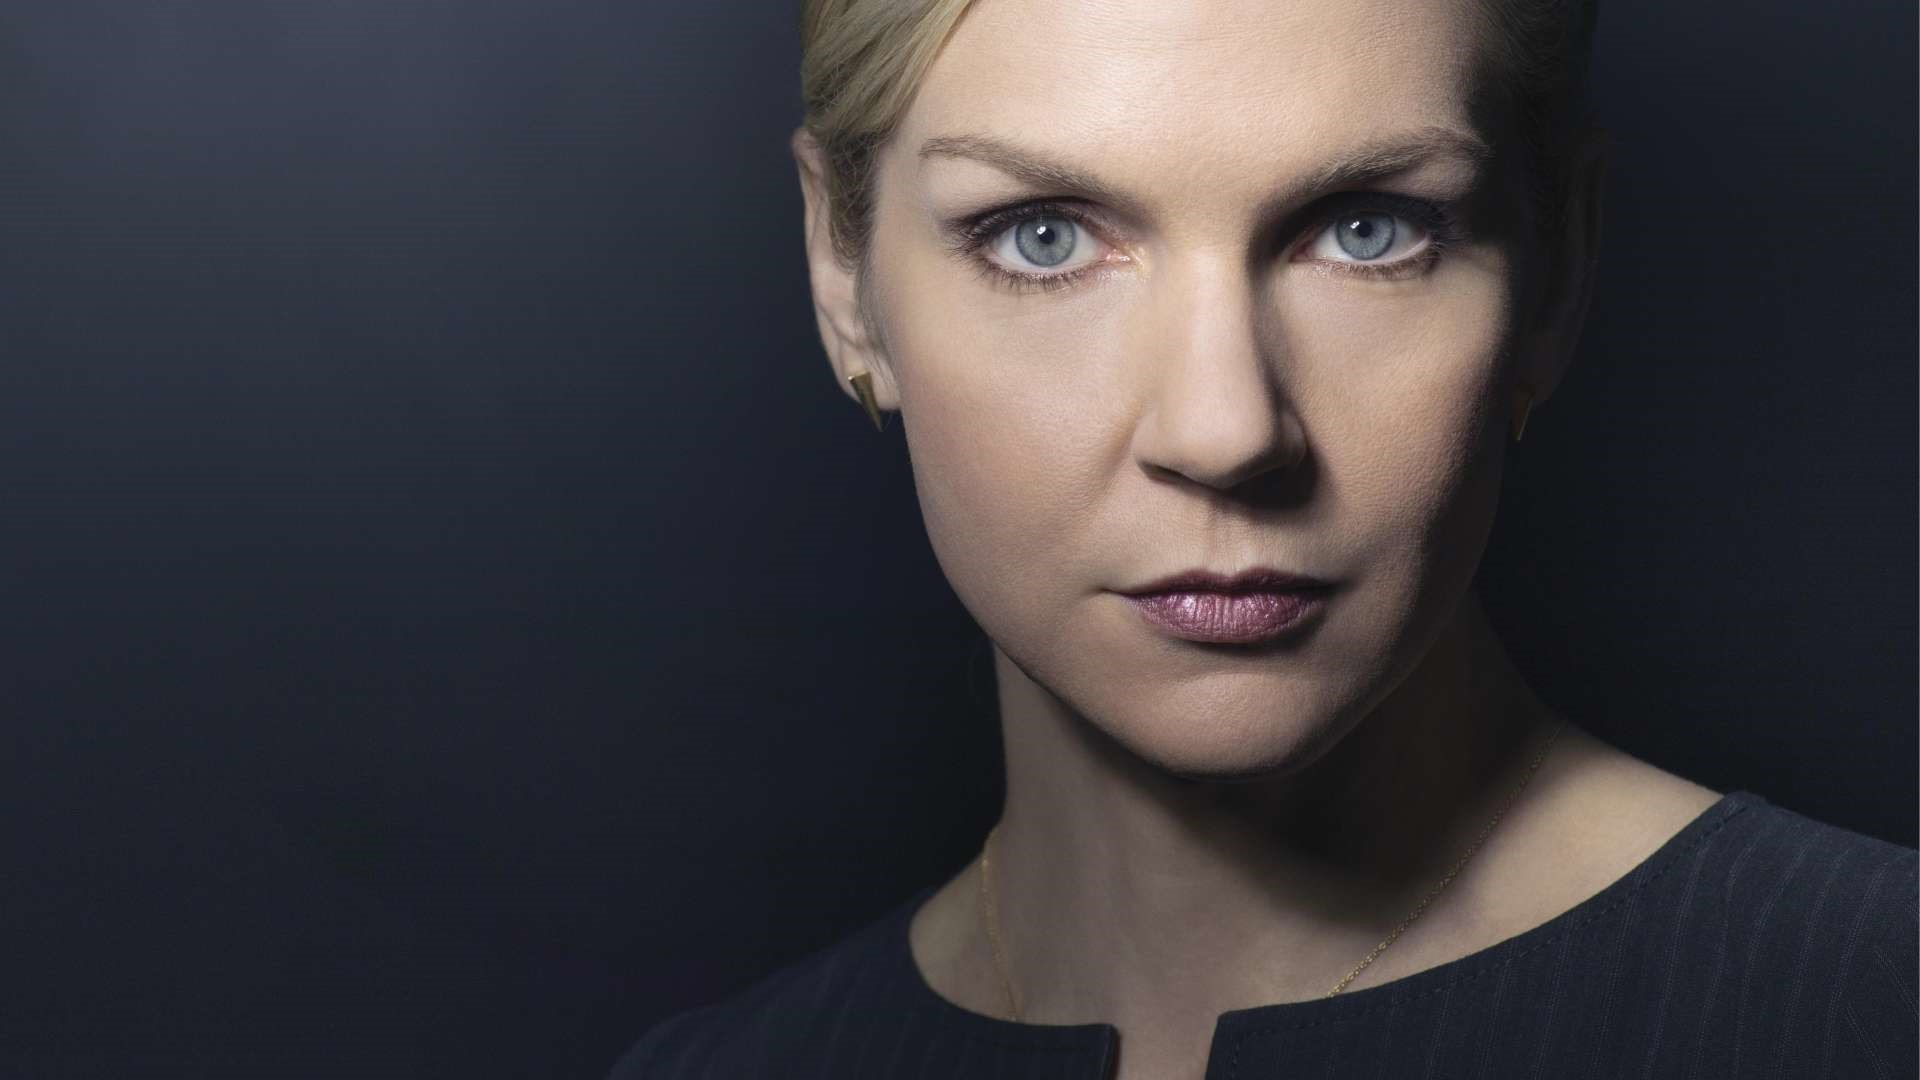 Rhea Seehorn Wallpapers for Computer